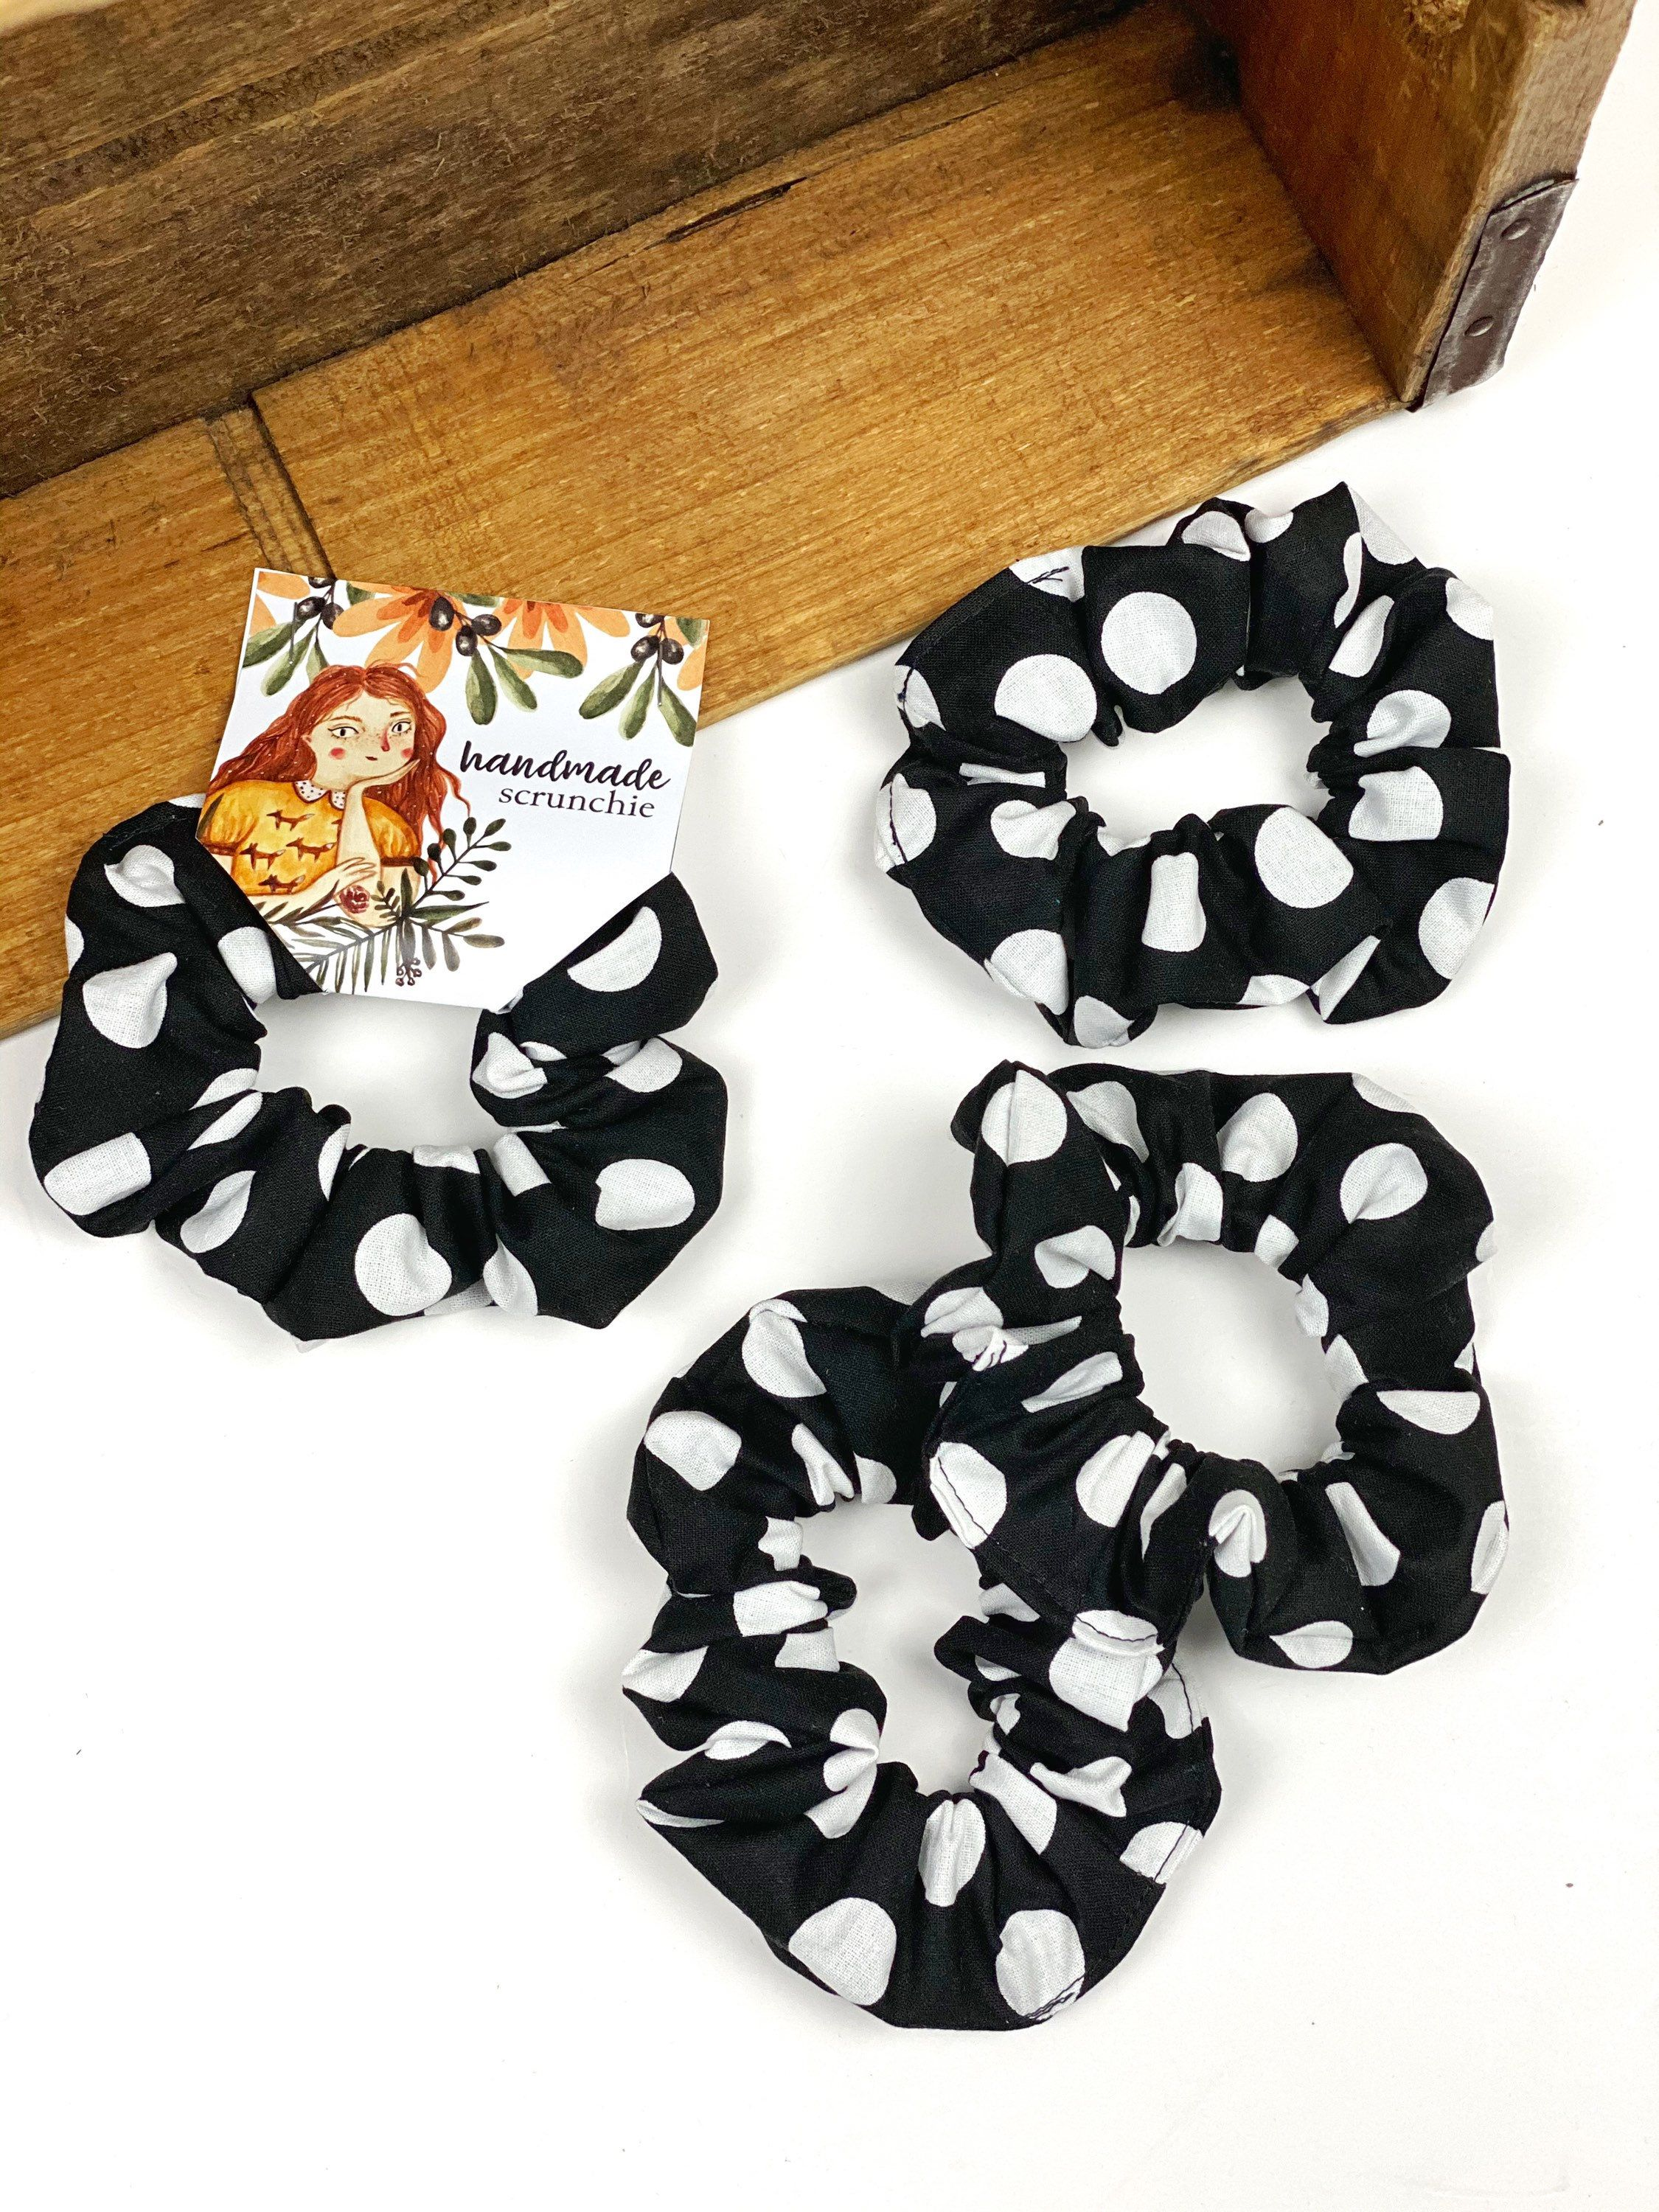 Animal Print Hair Scrunchie / Hair Scrunchies / 100% Cotton Scrunchie / Fabric Scrunchies / Elastic Ties Bands Hairbands Ponytail Holder